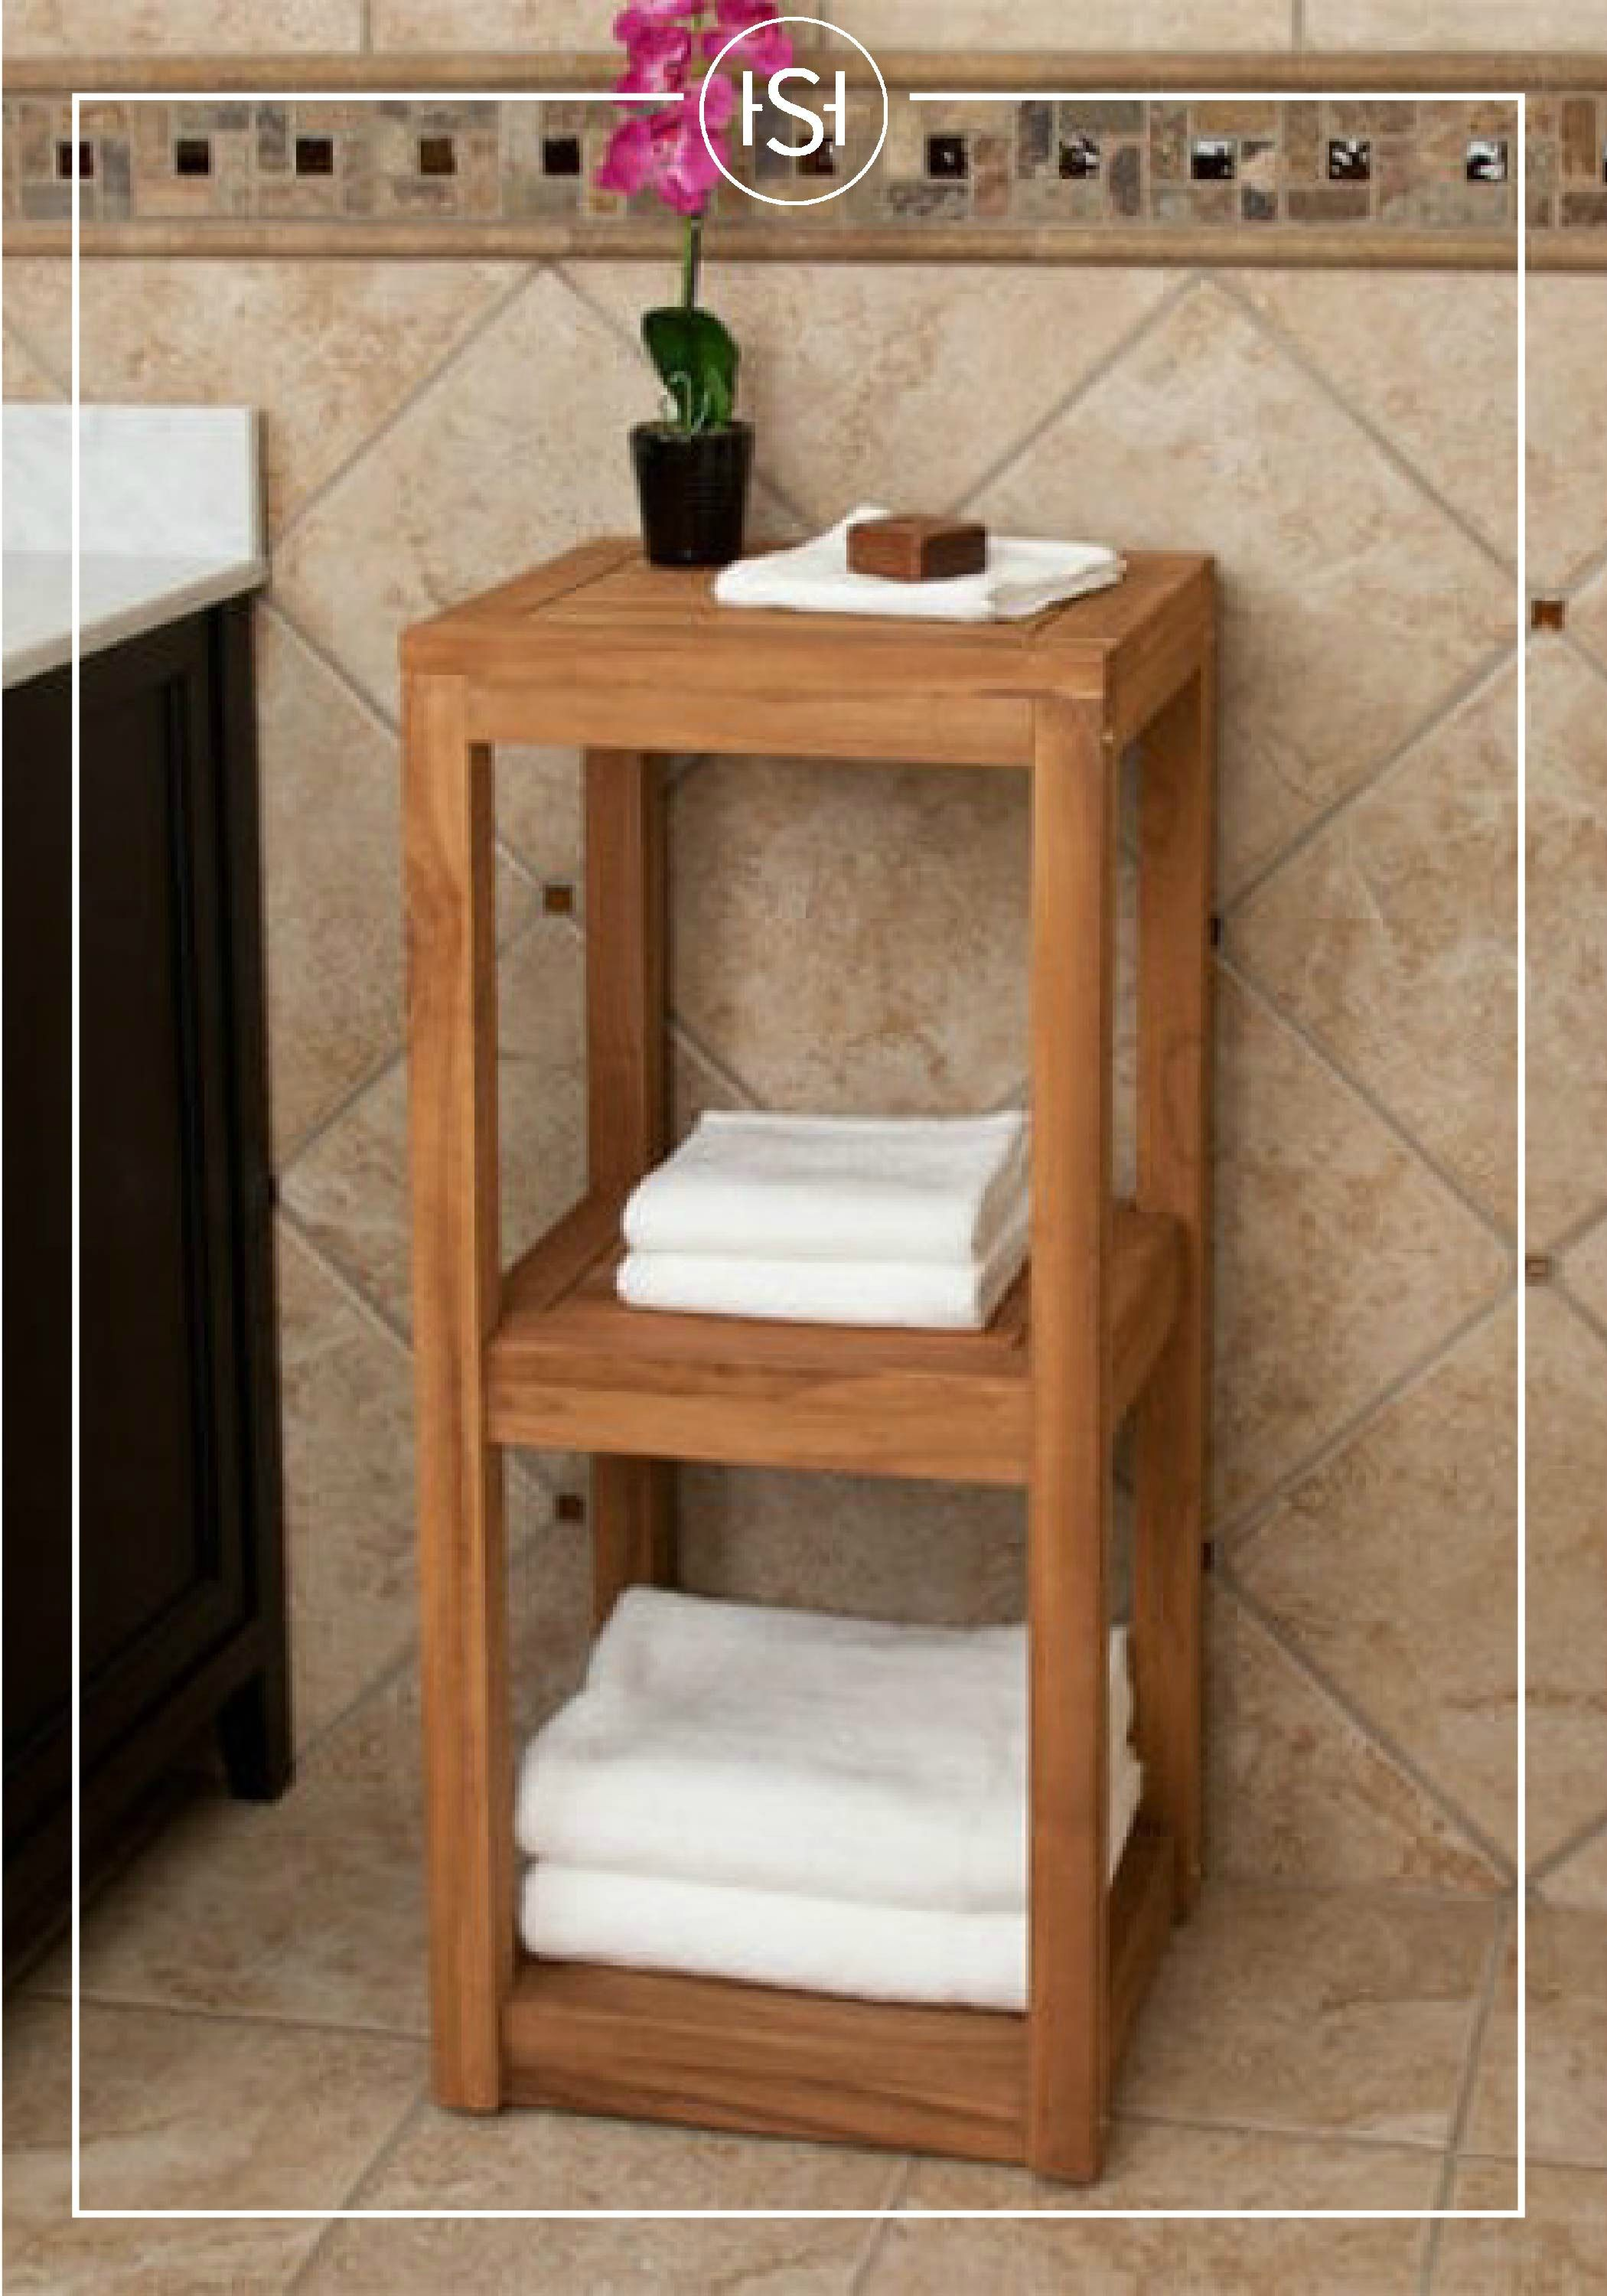 Three Tier Teak Towel Shelf Bathroom Shelves Towel Shelf